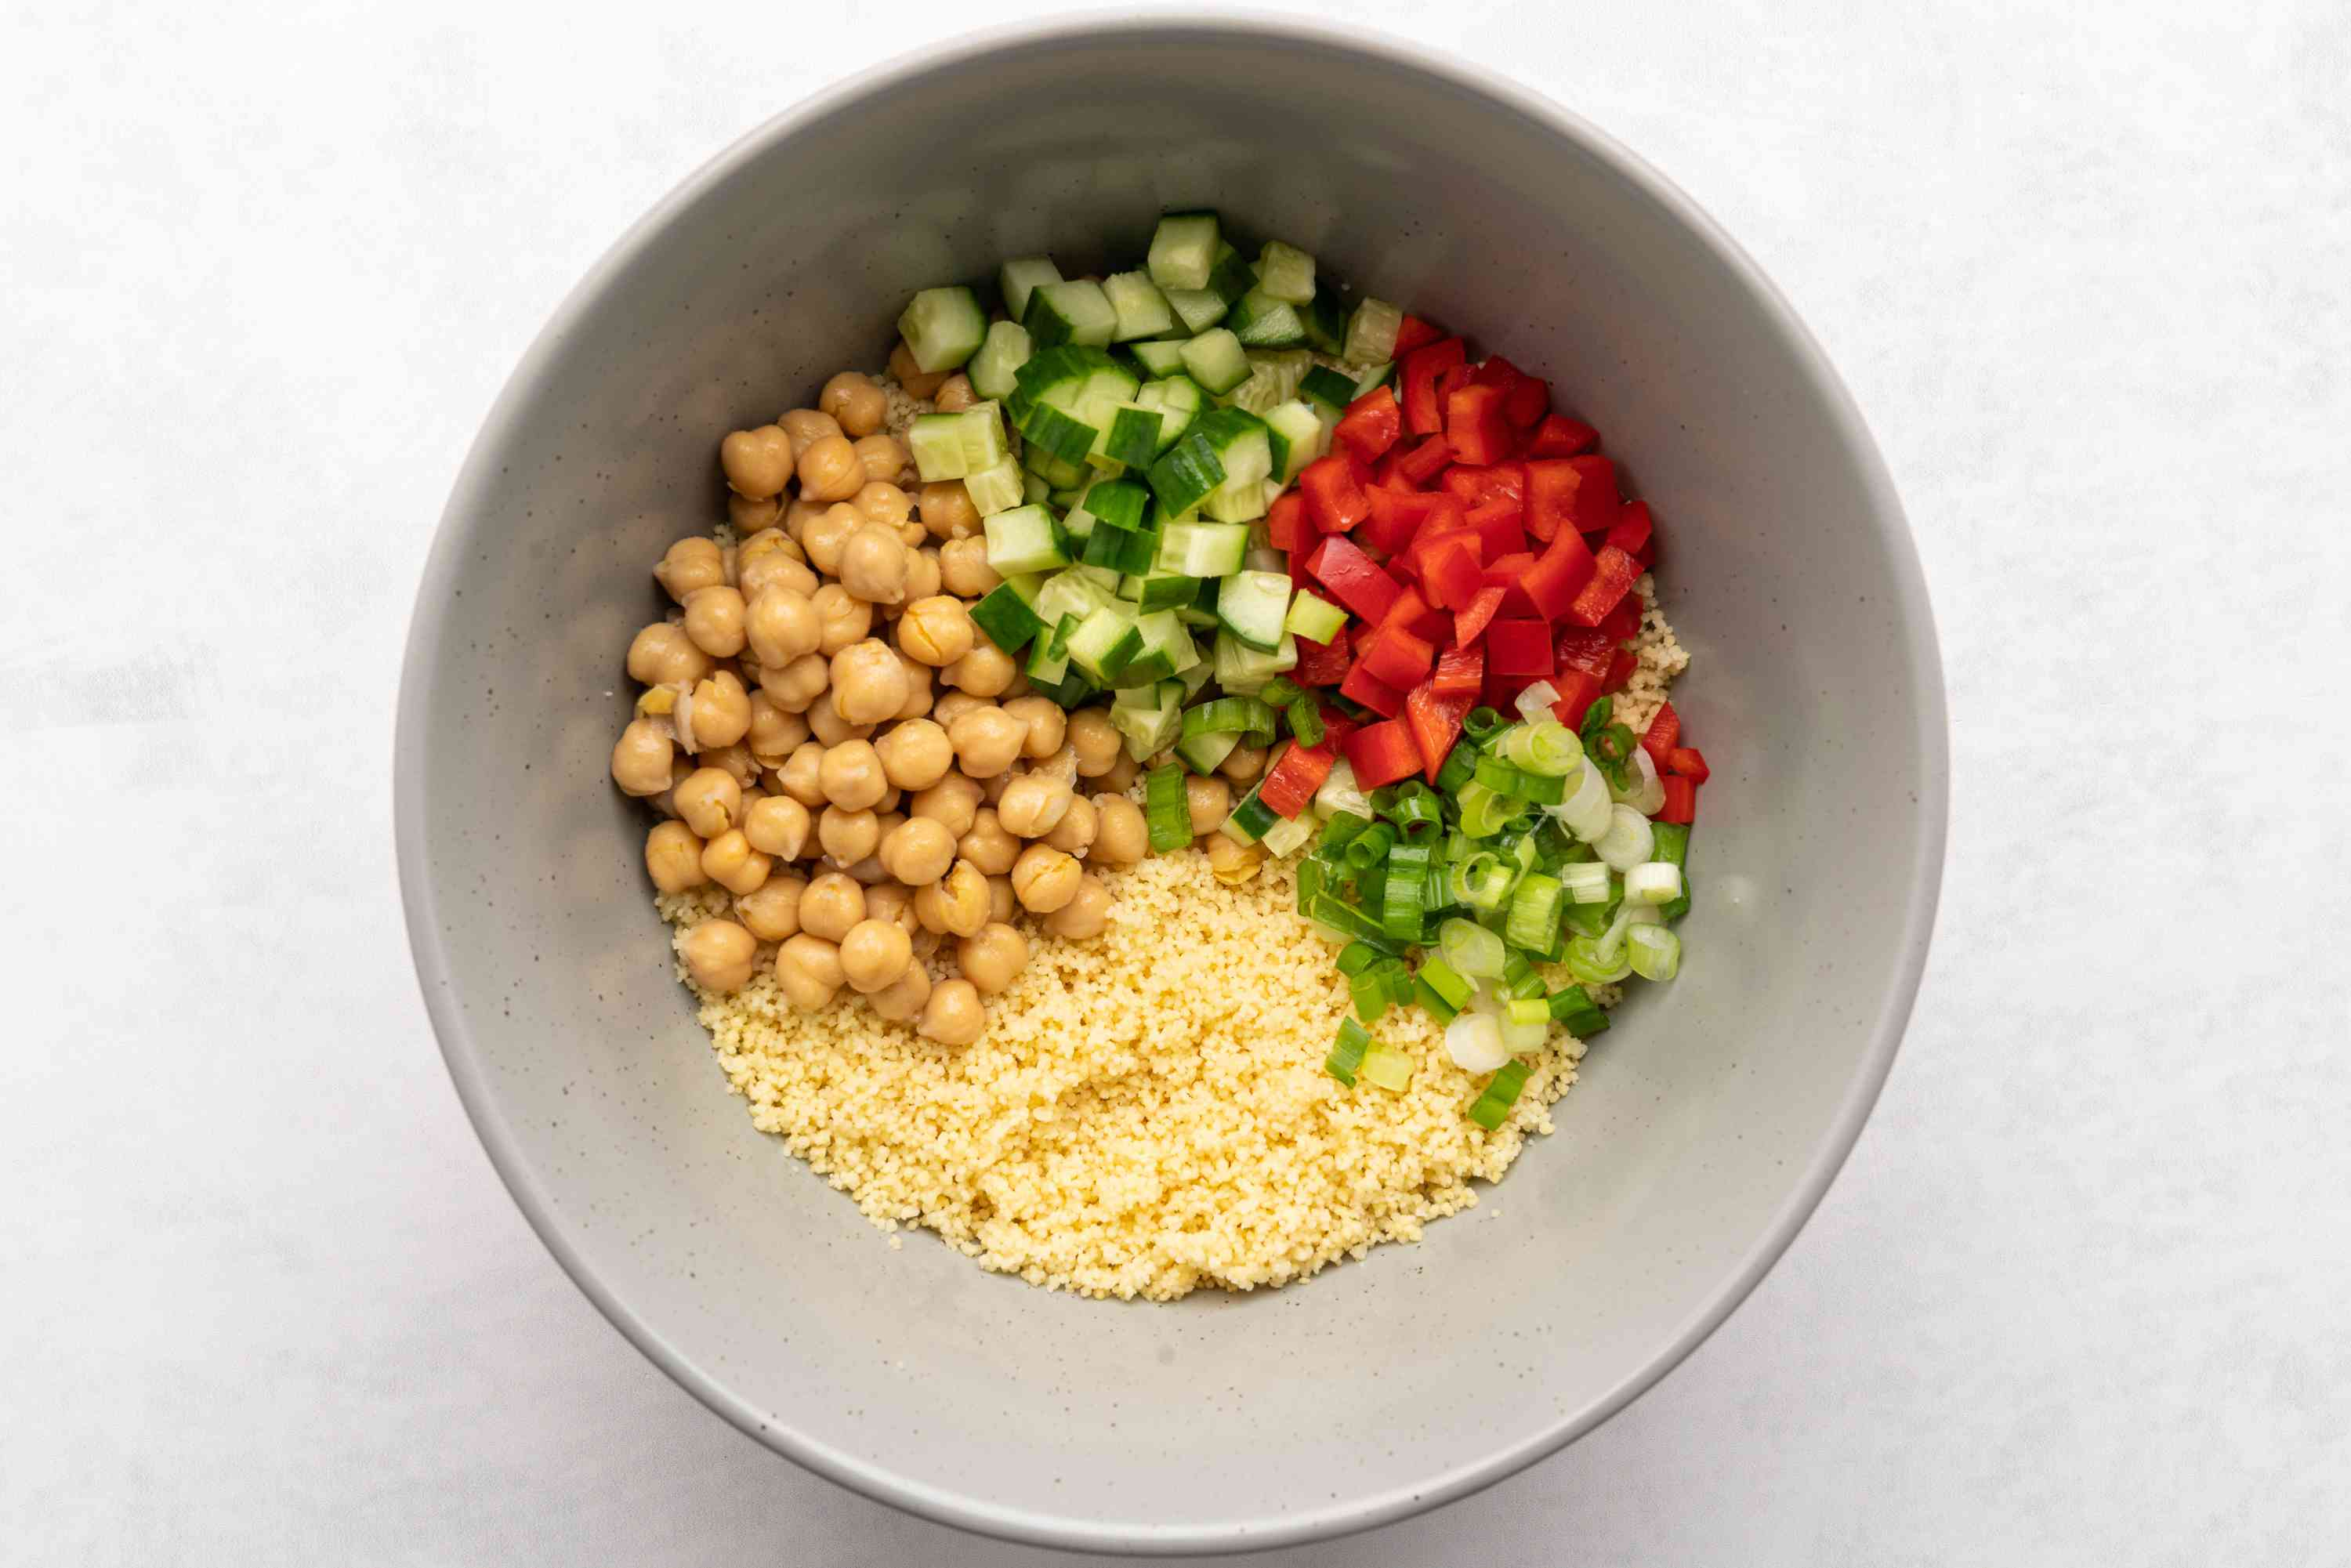 couscous salad ingredients in a bowl